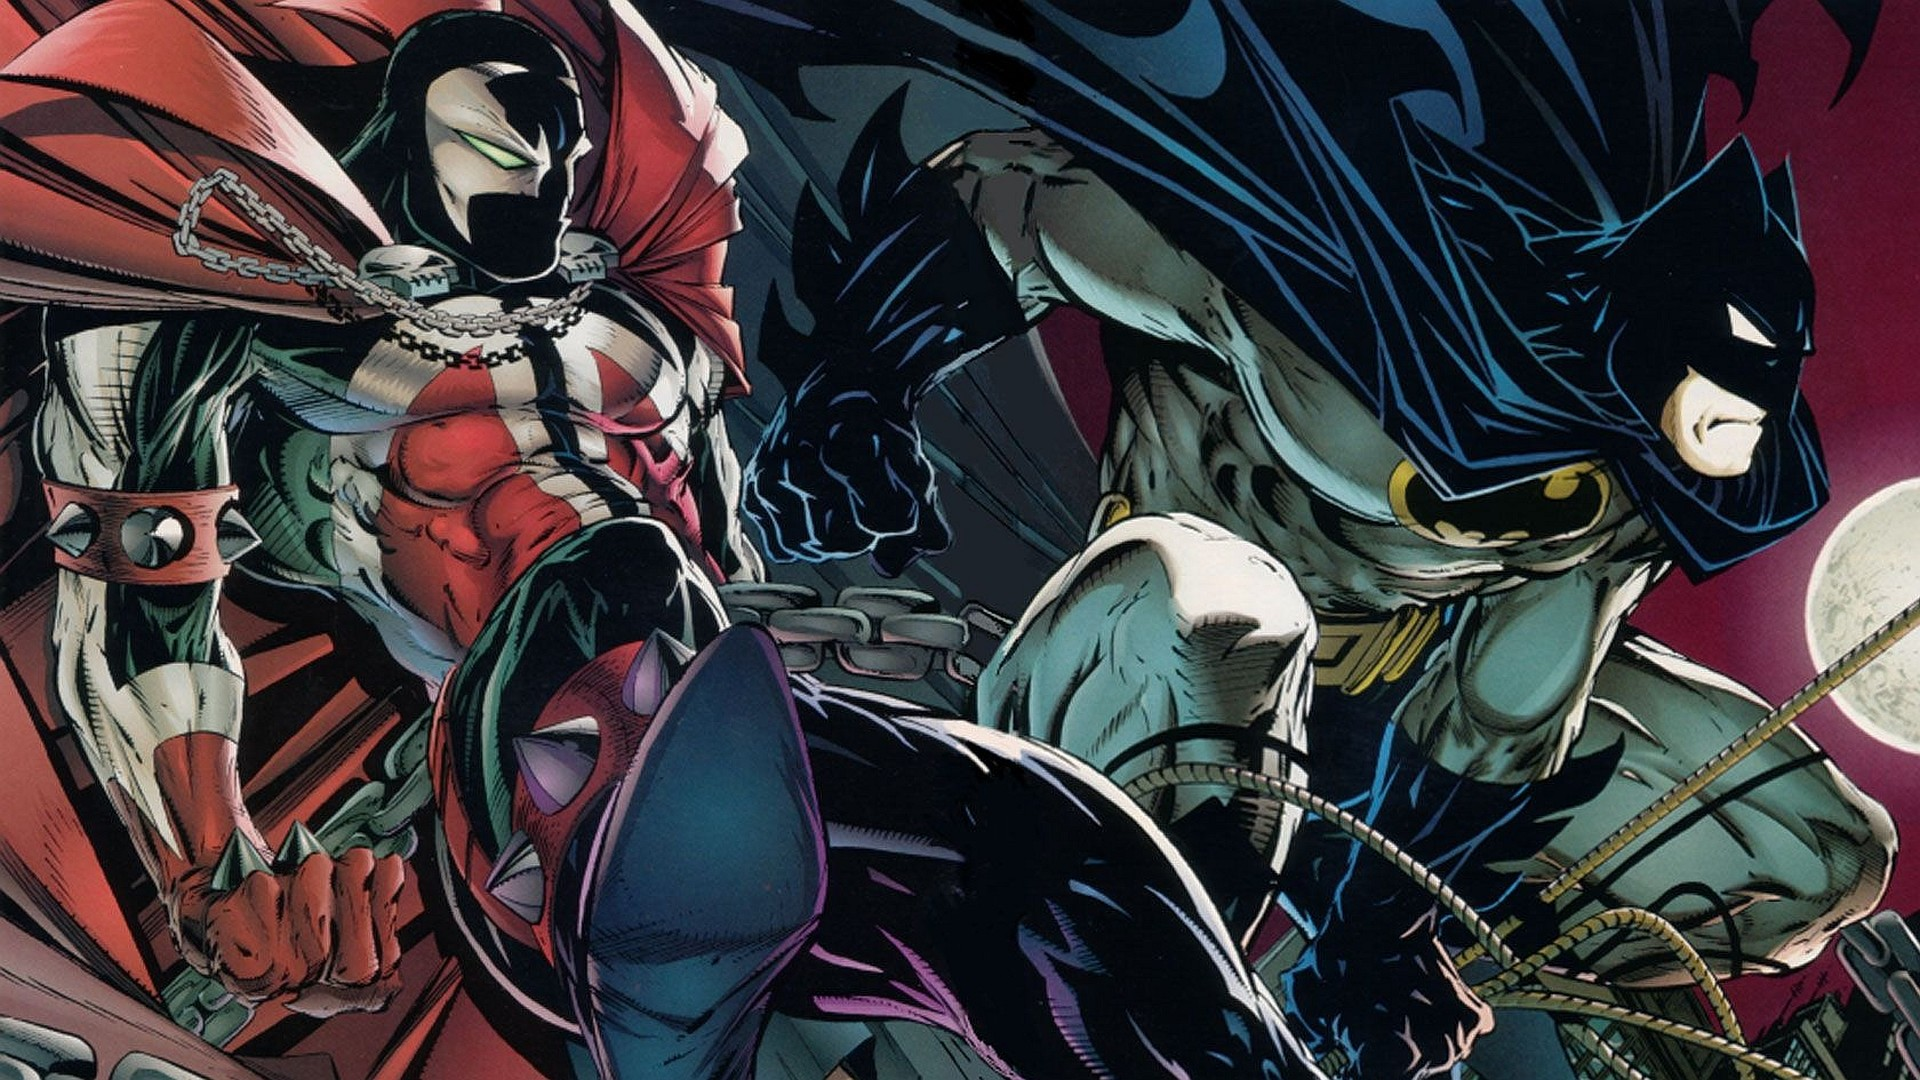 Spawn Wallpaper Hd 1920x1080 86 Images